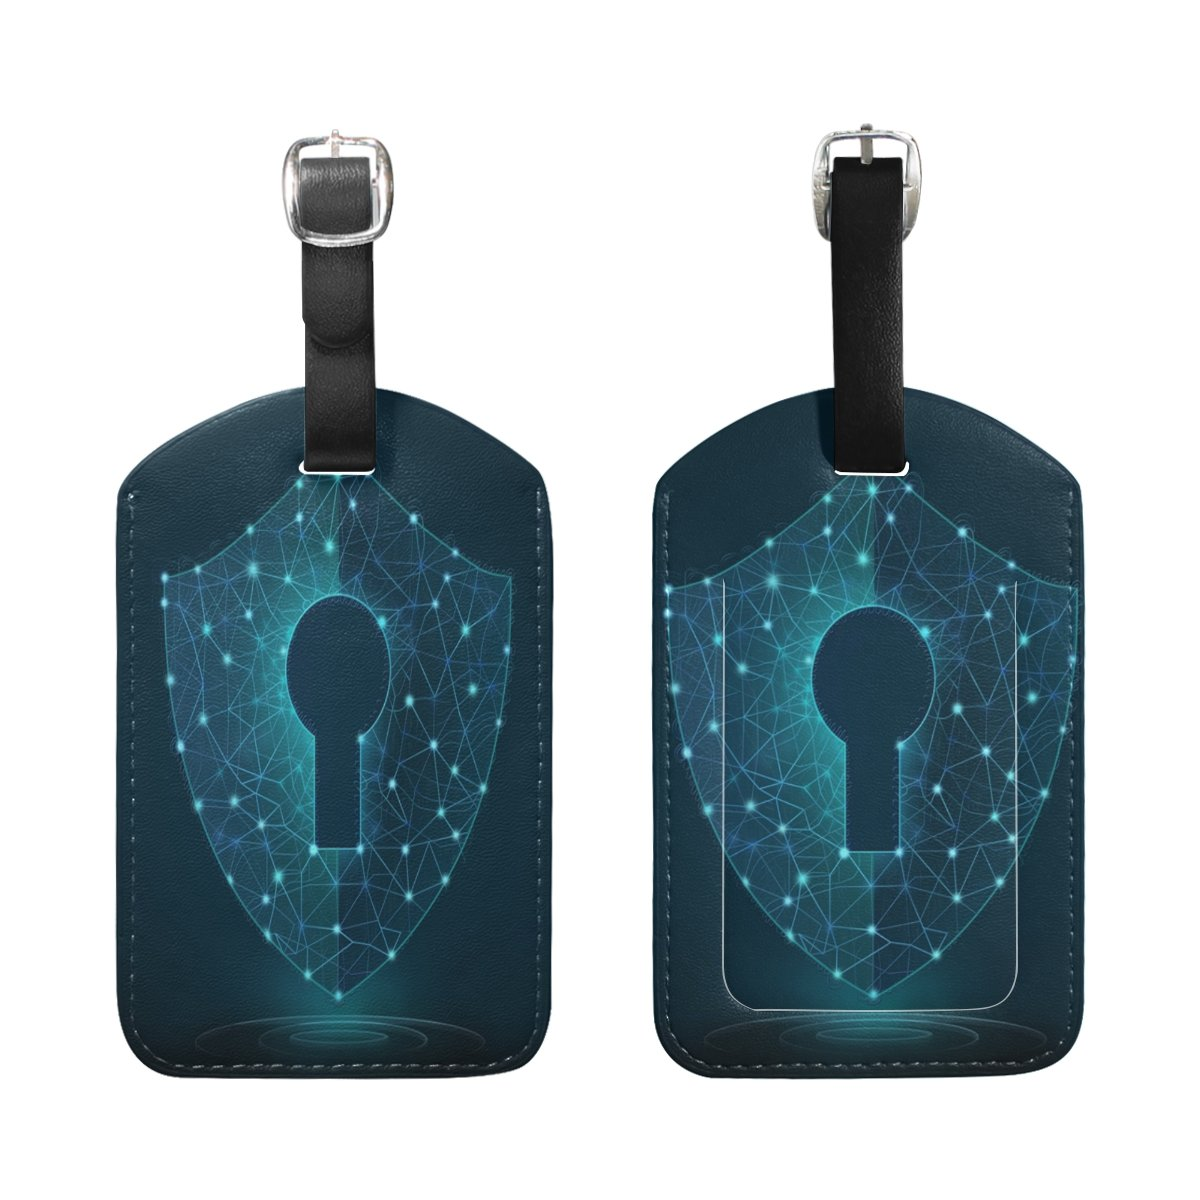 Saobao Travel Luggage Tag Cyber Security Guard PU Leather Baggage Suitcase Travel ID Bag Tag 1Pcs